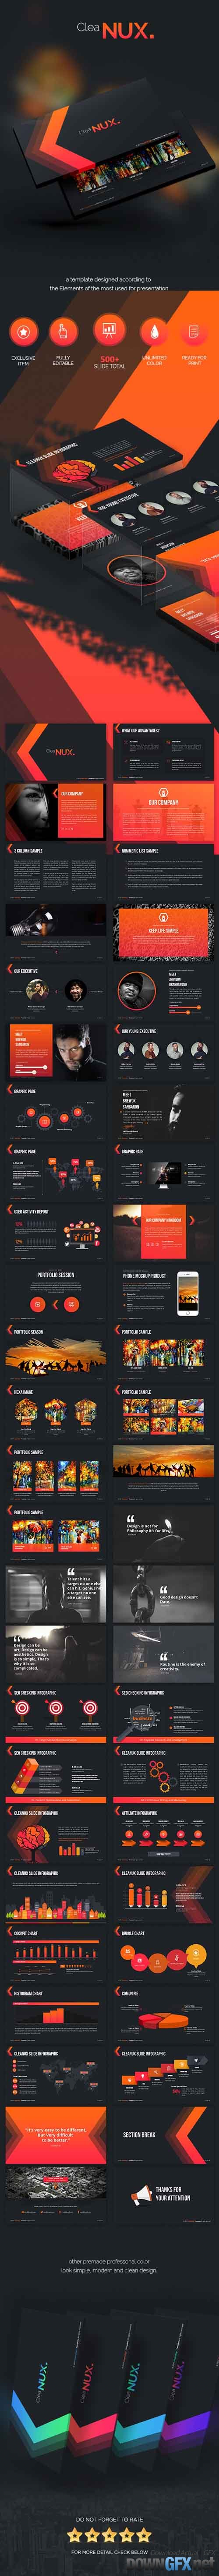 Cleanux - Powerpoint Presentation Template 20071999